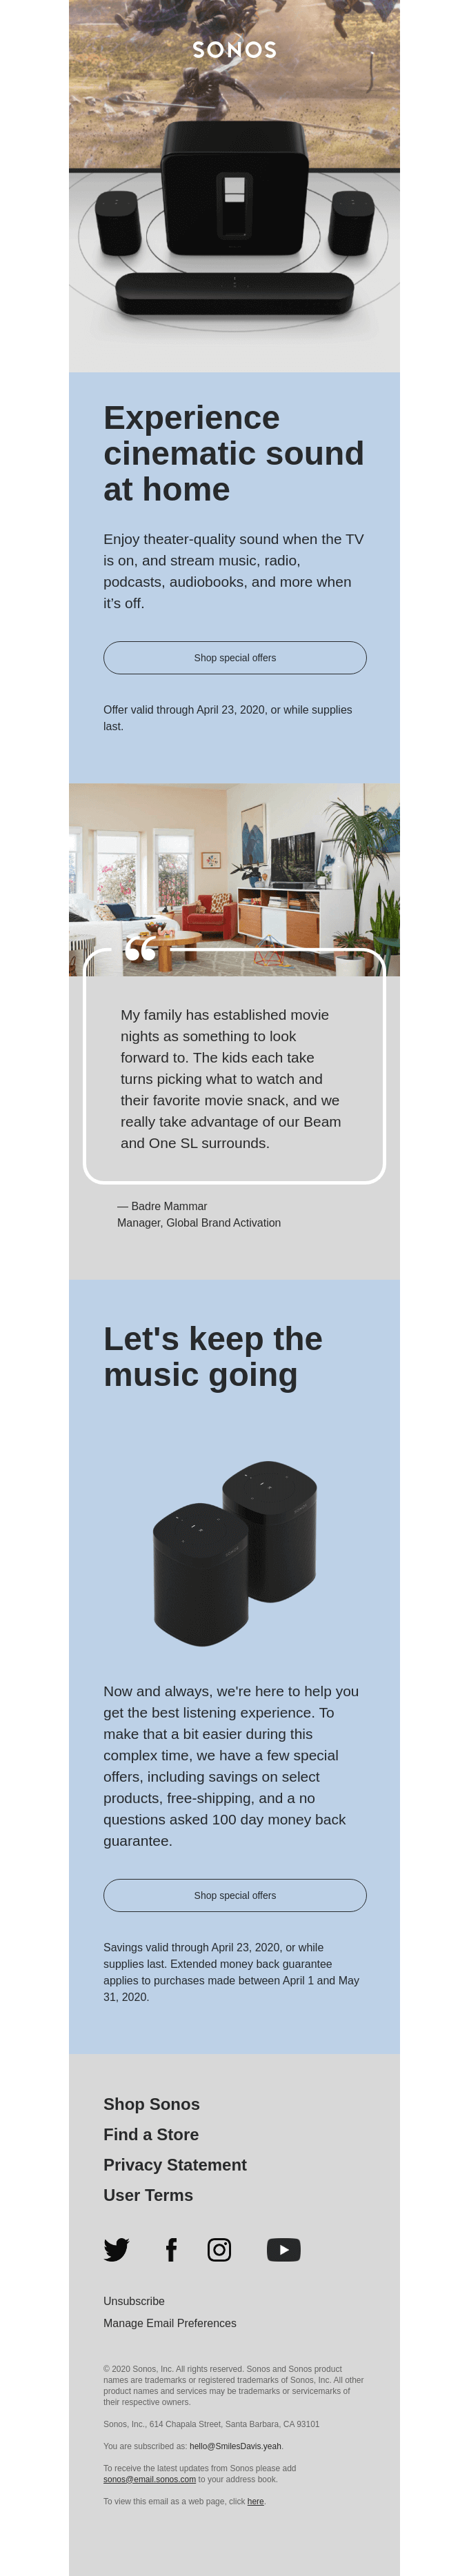 Let's keep the music going